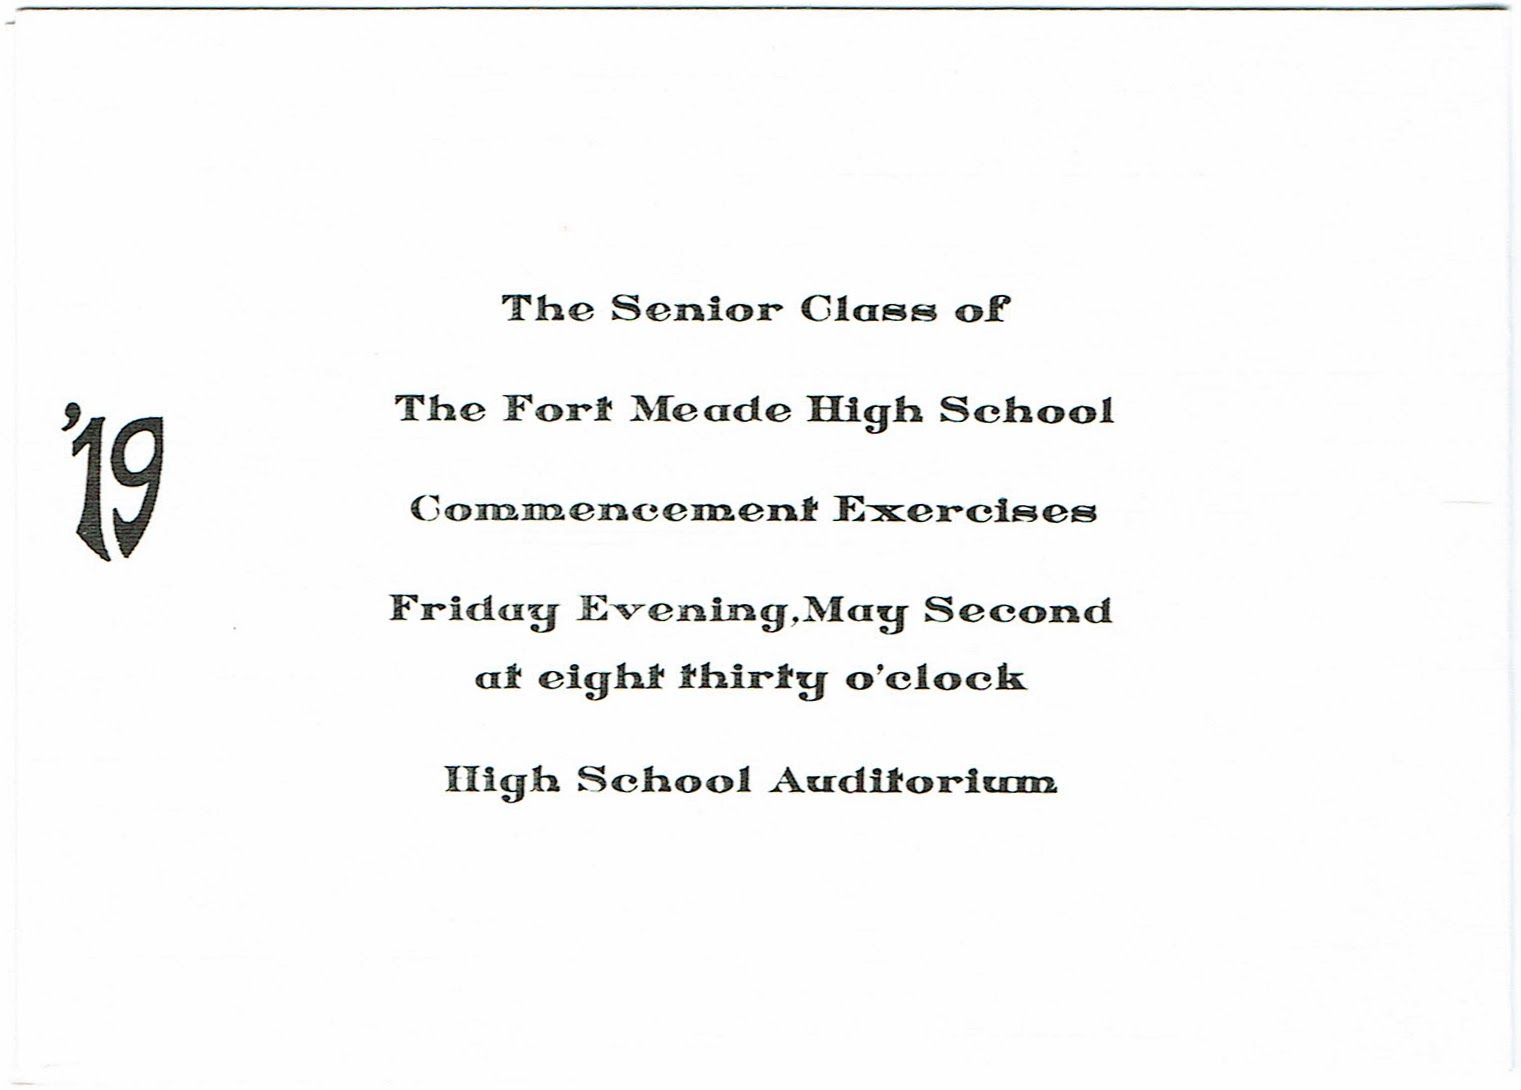 Reprint of the graduation program for the class of 1919 at Fort Meade High School in Florida